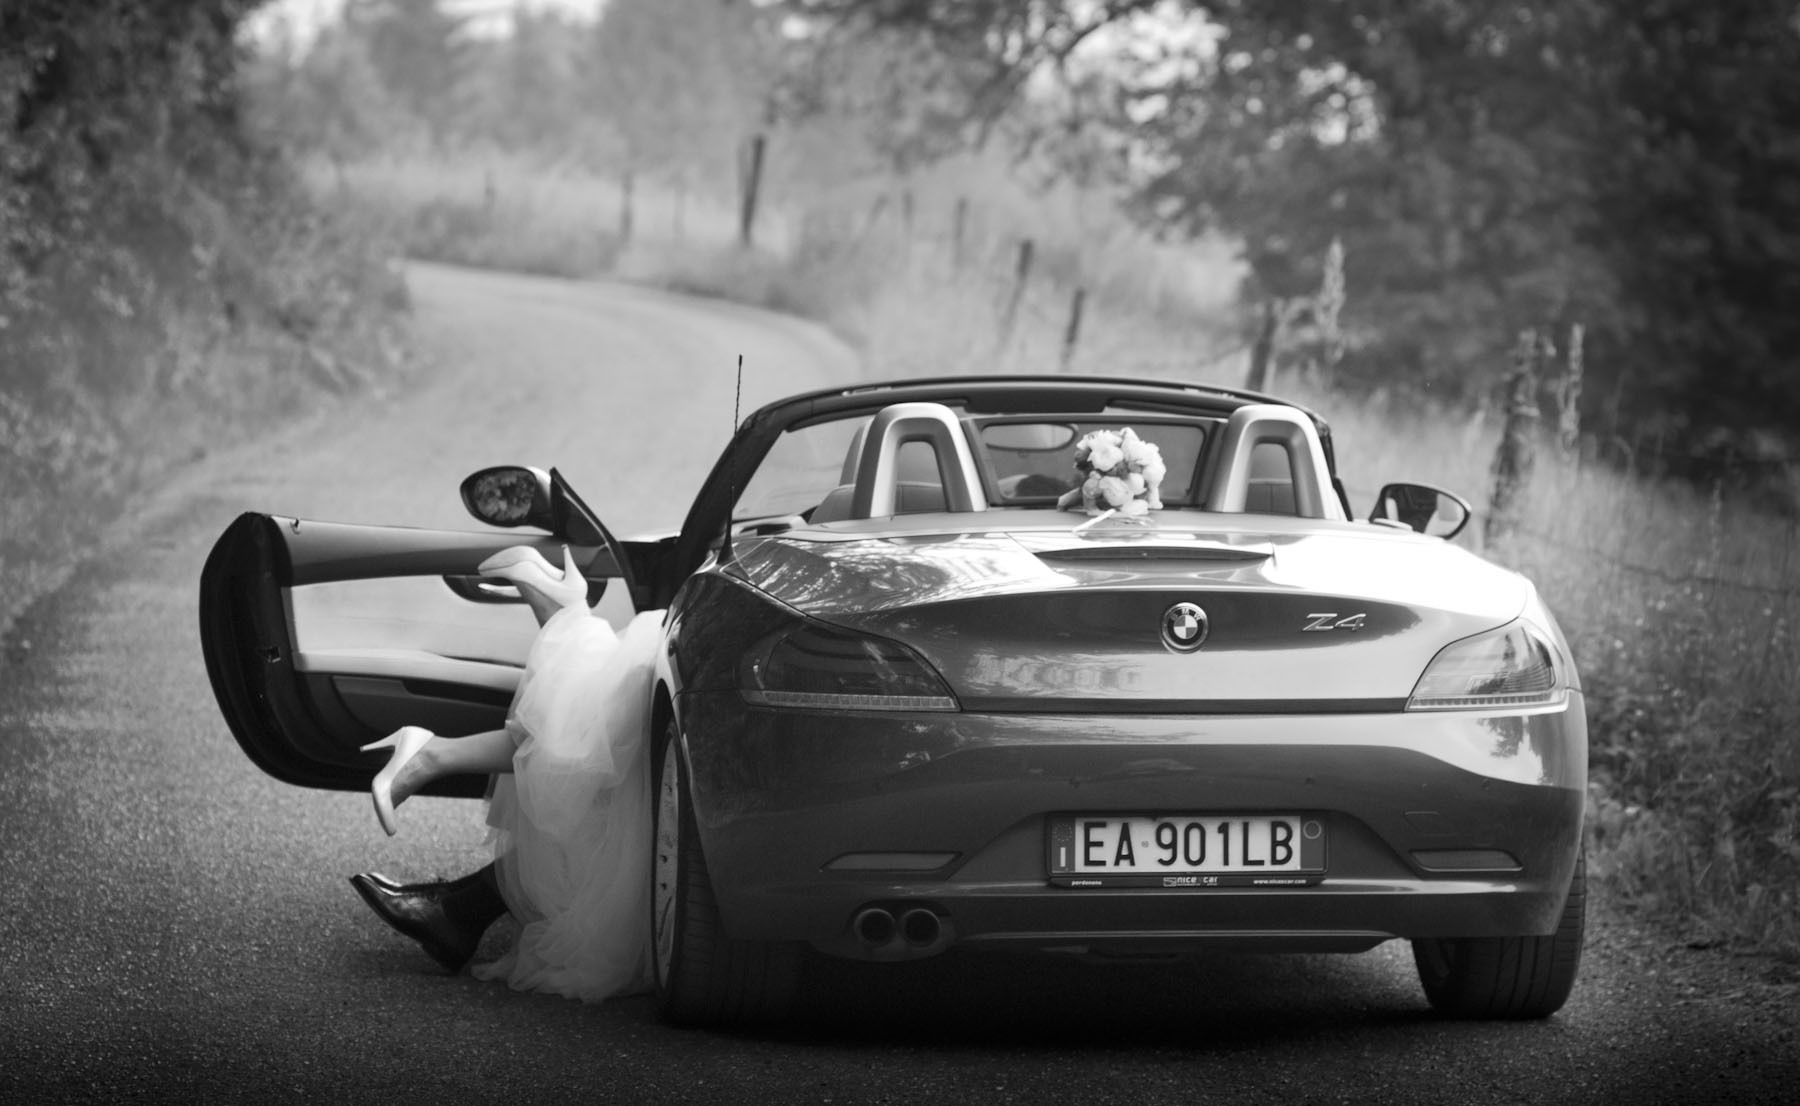 Just Married (Torbe di Negrar, Italy)